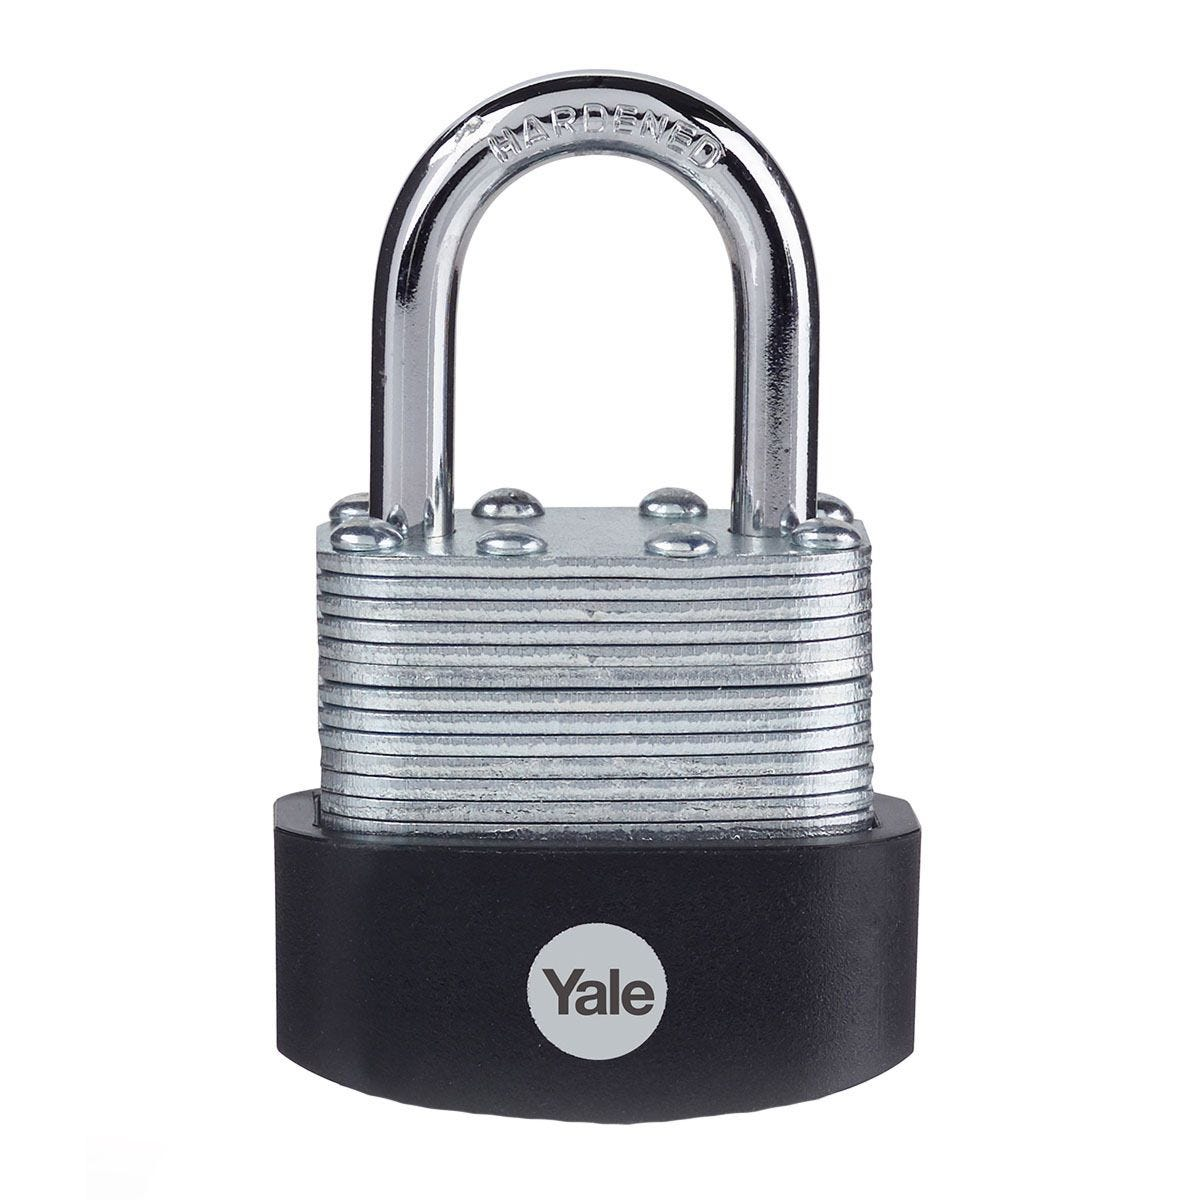 Yale Laminated Steel Padlock 40mm